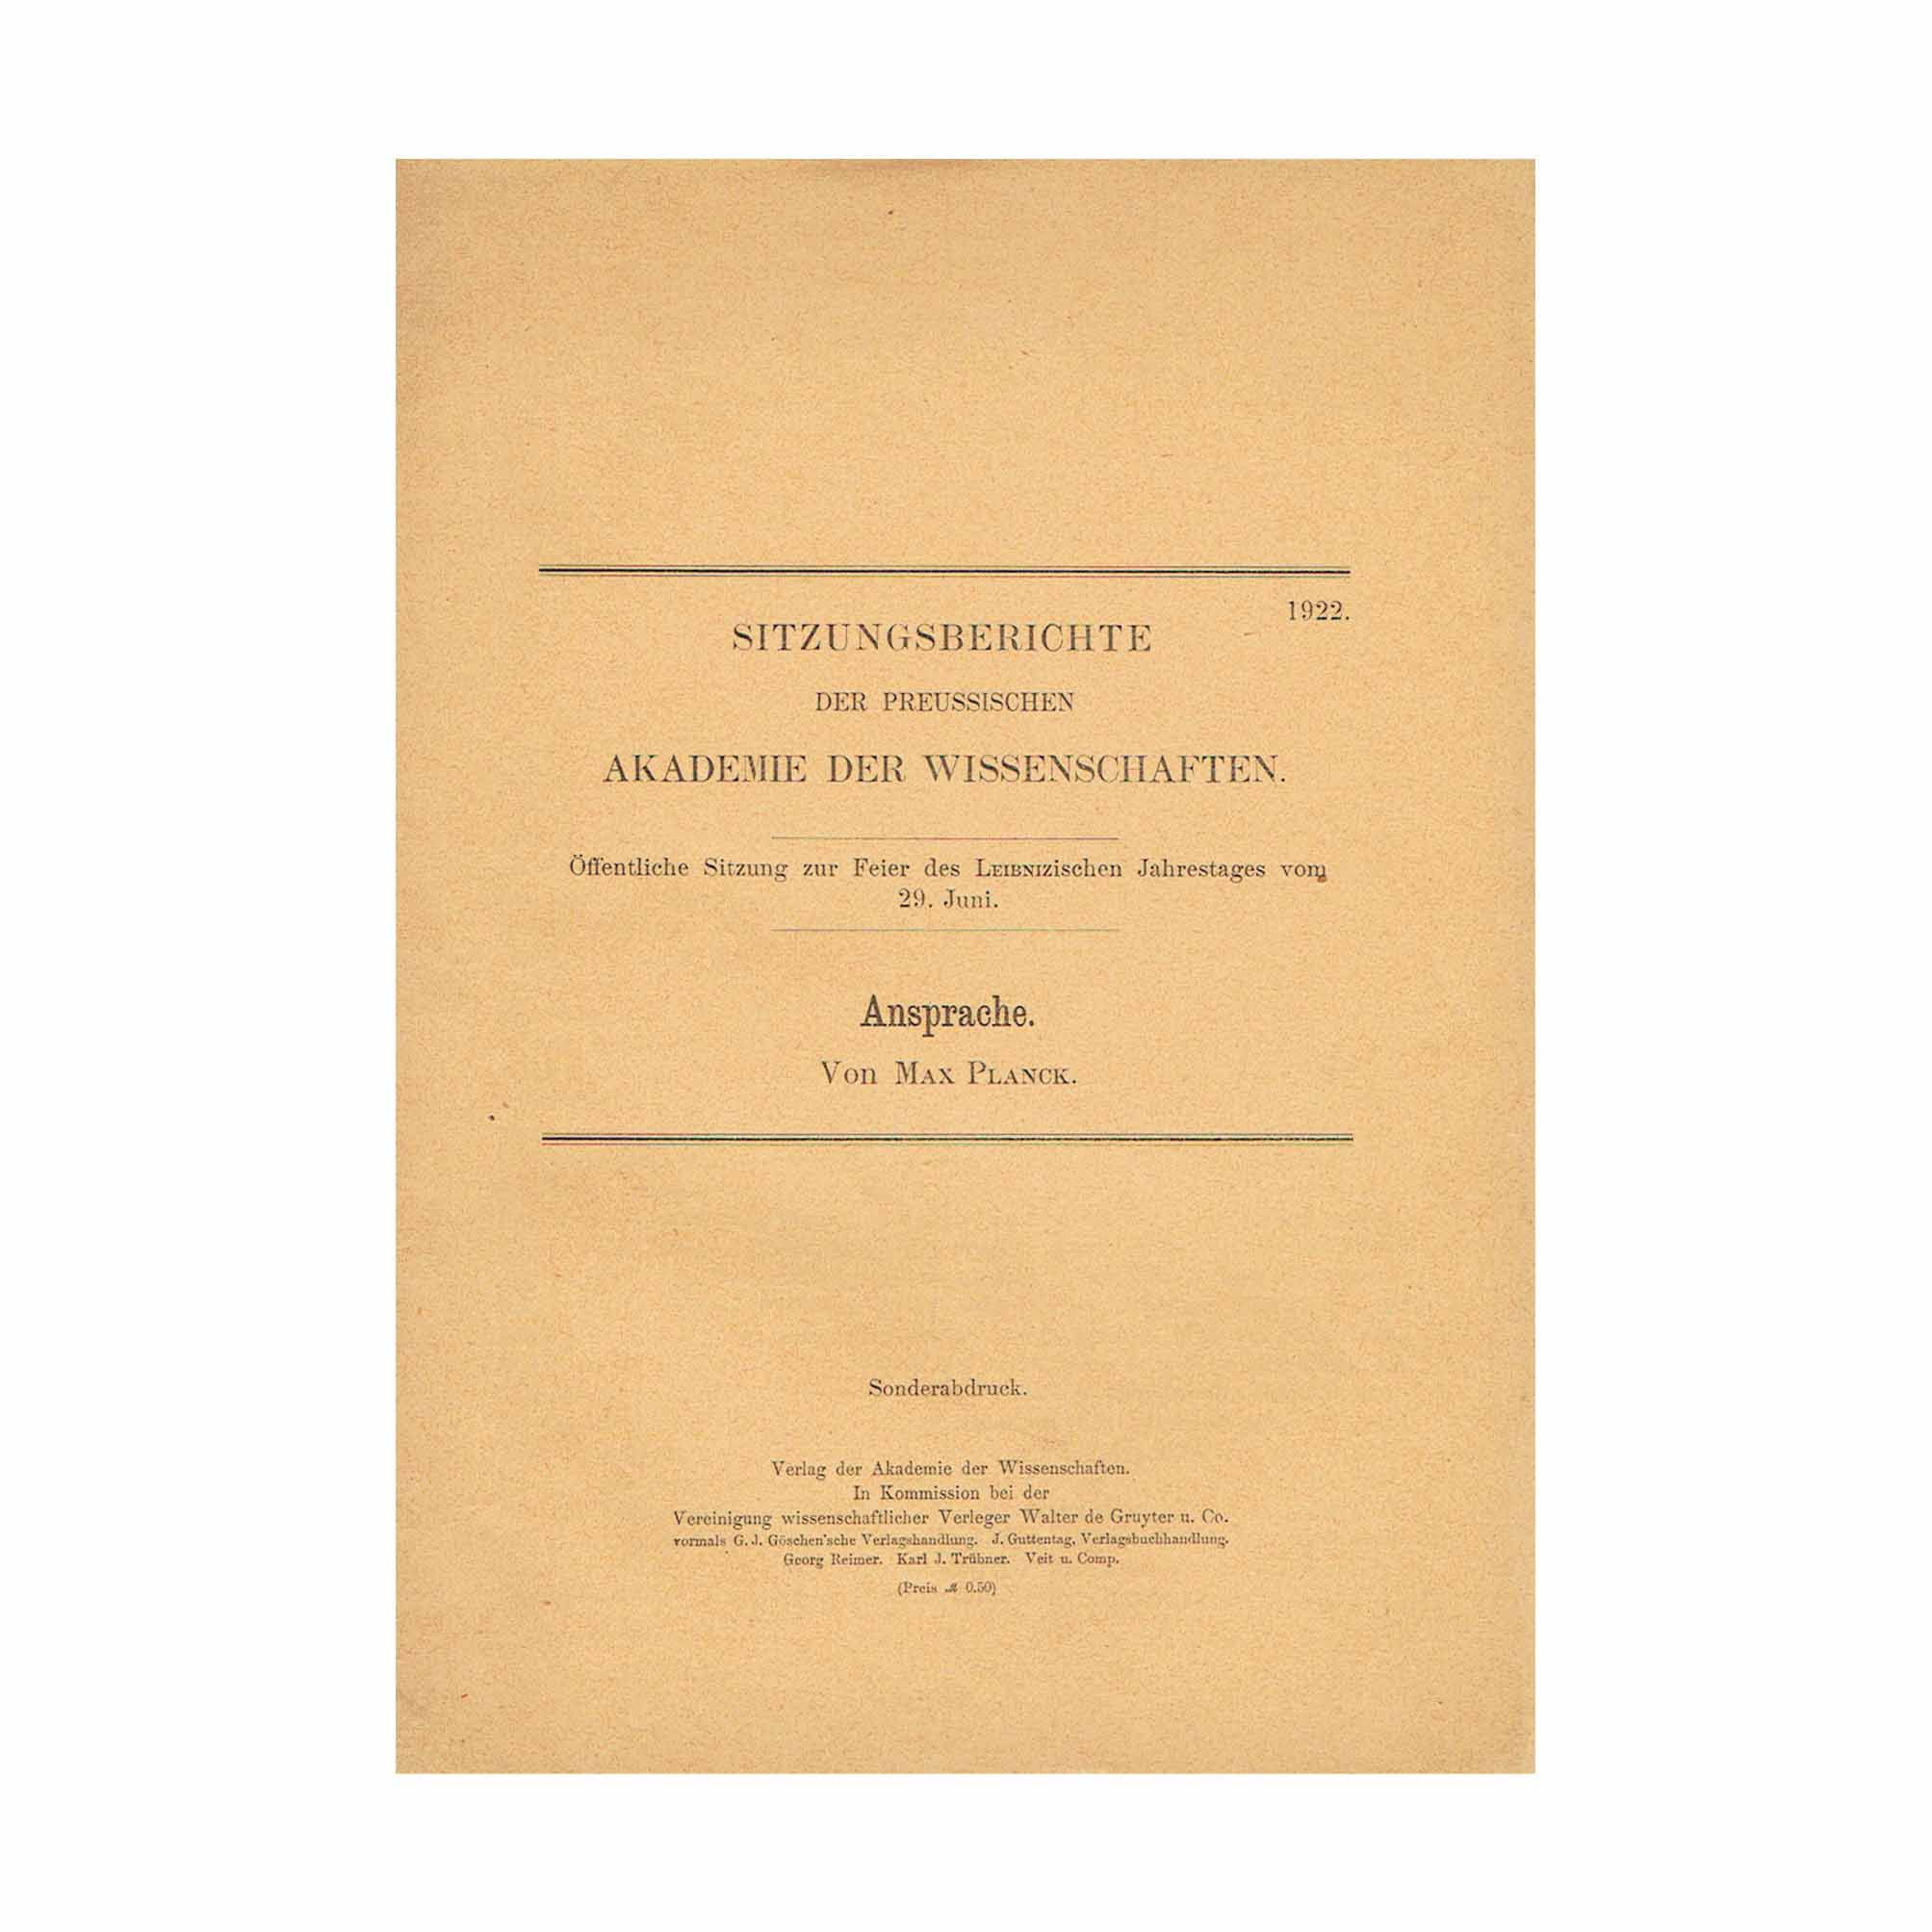 5822K Planck Ansprache Leipzig First Offprint 1922 Front Cover N